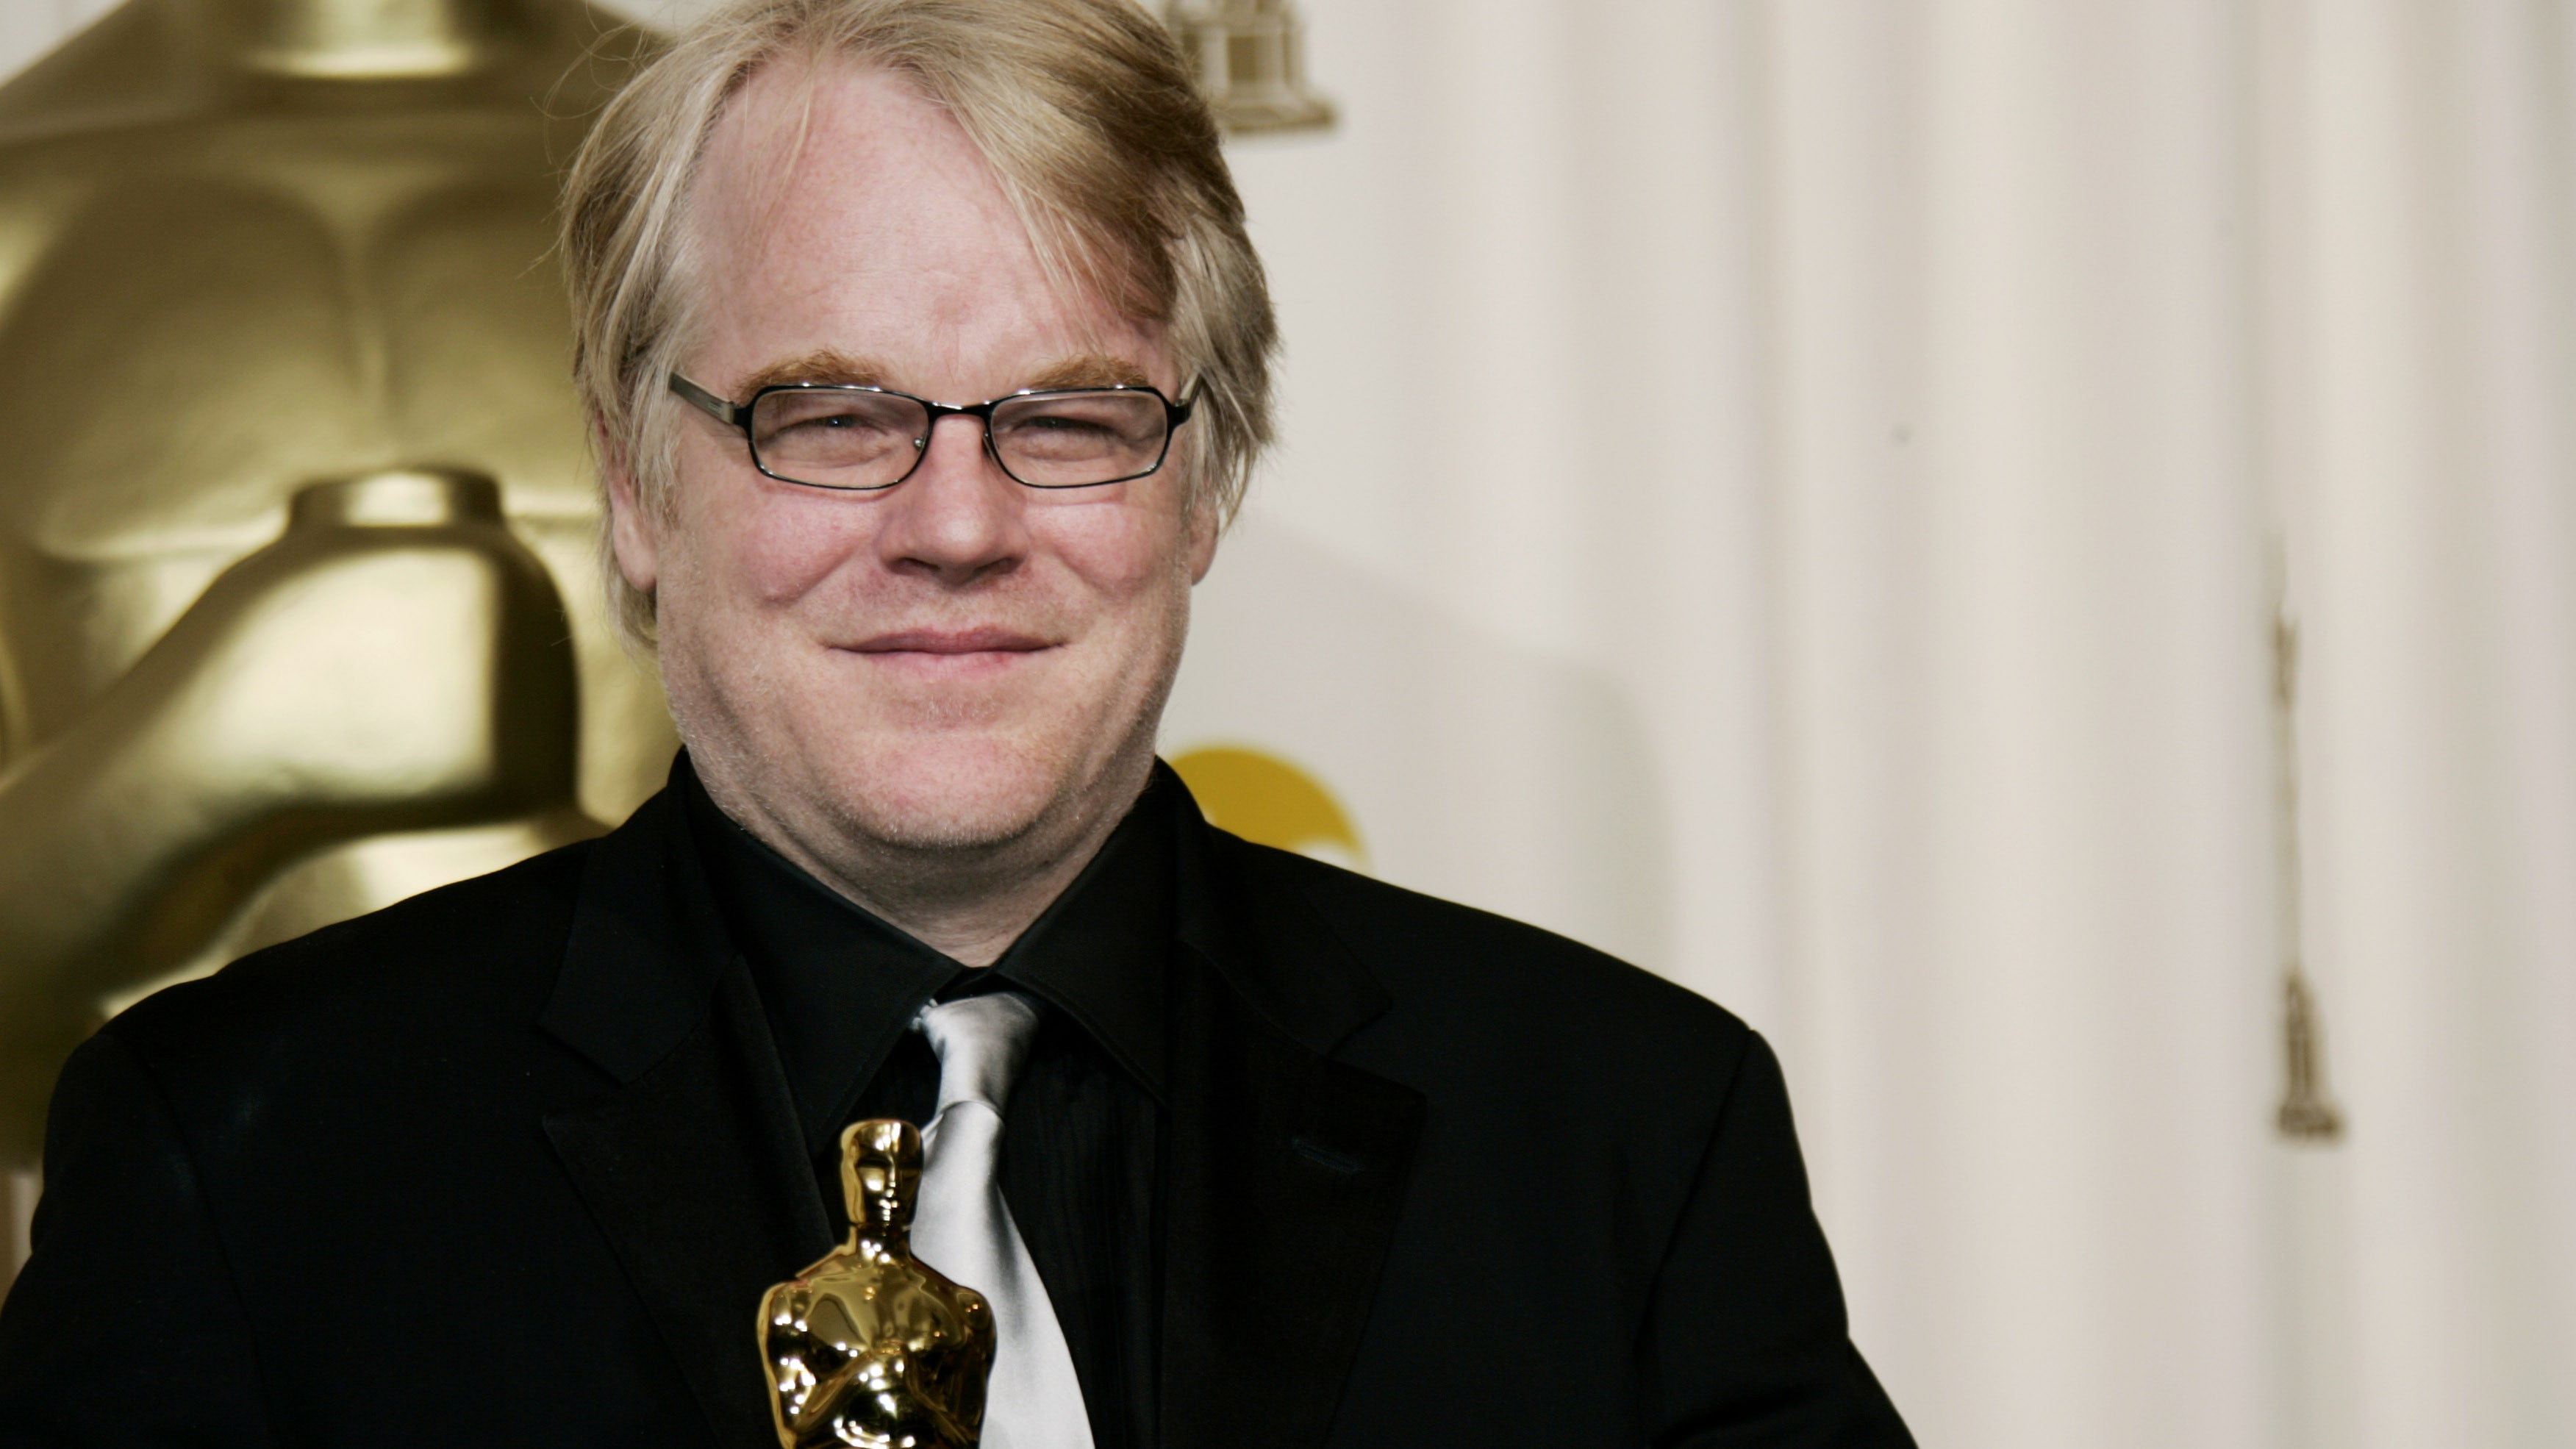 Philip Seymour Hoffman widescreen wallpapers